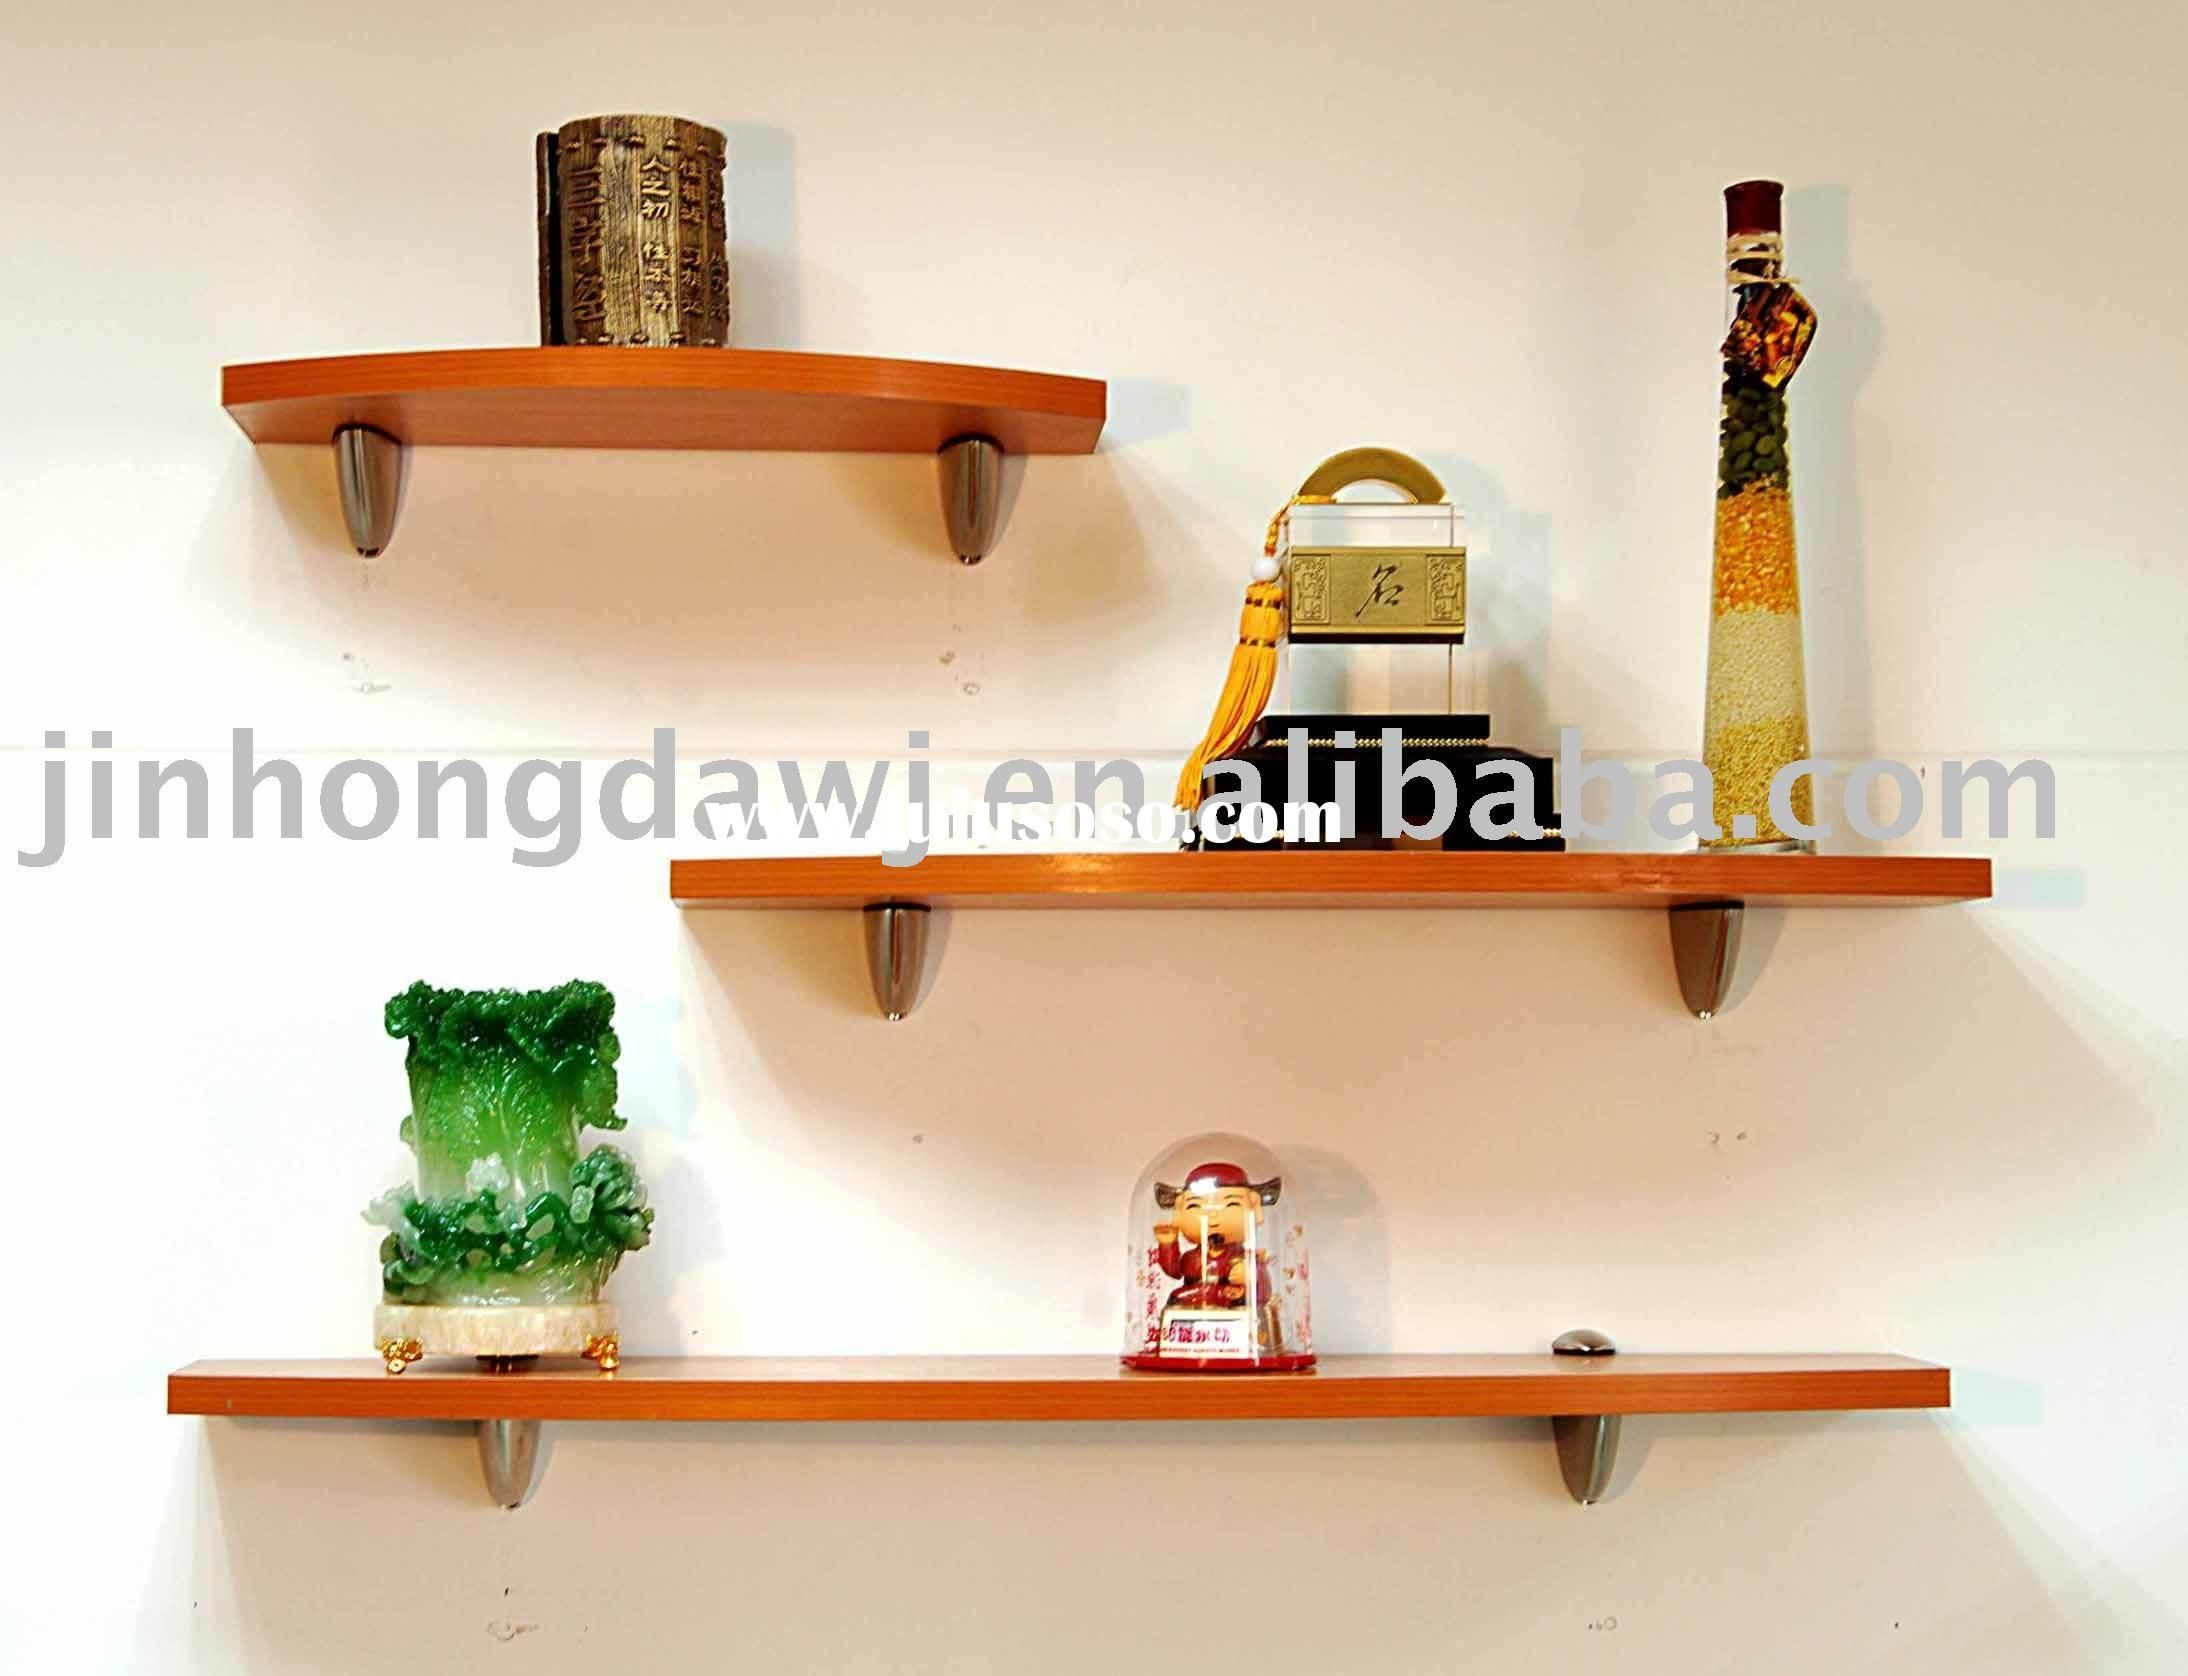 46 creative diy wall shelves ideas guru koala shelves for Creative shelf ideas